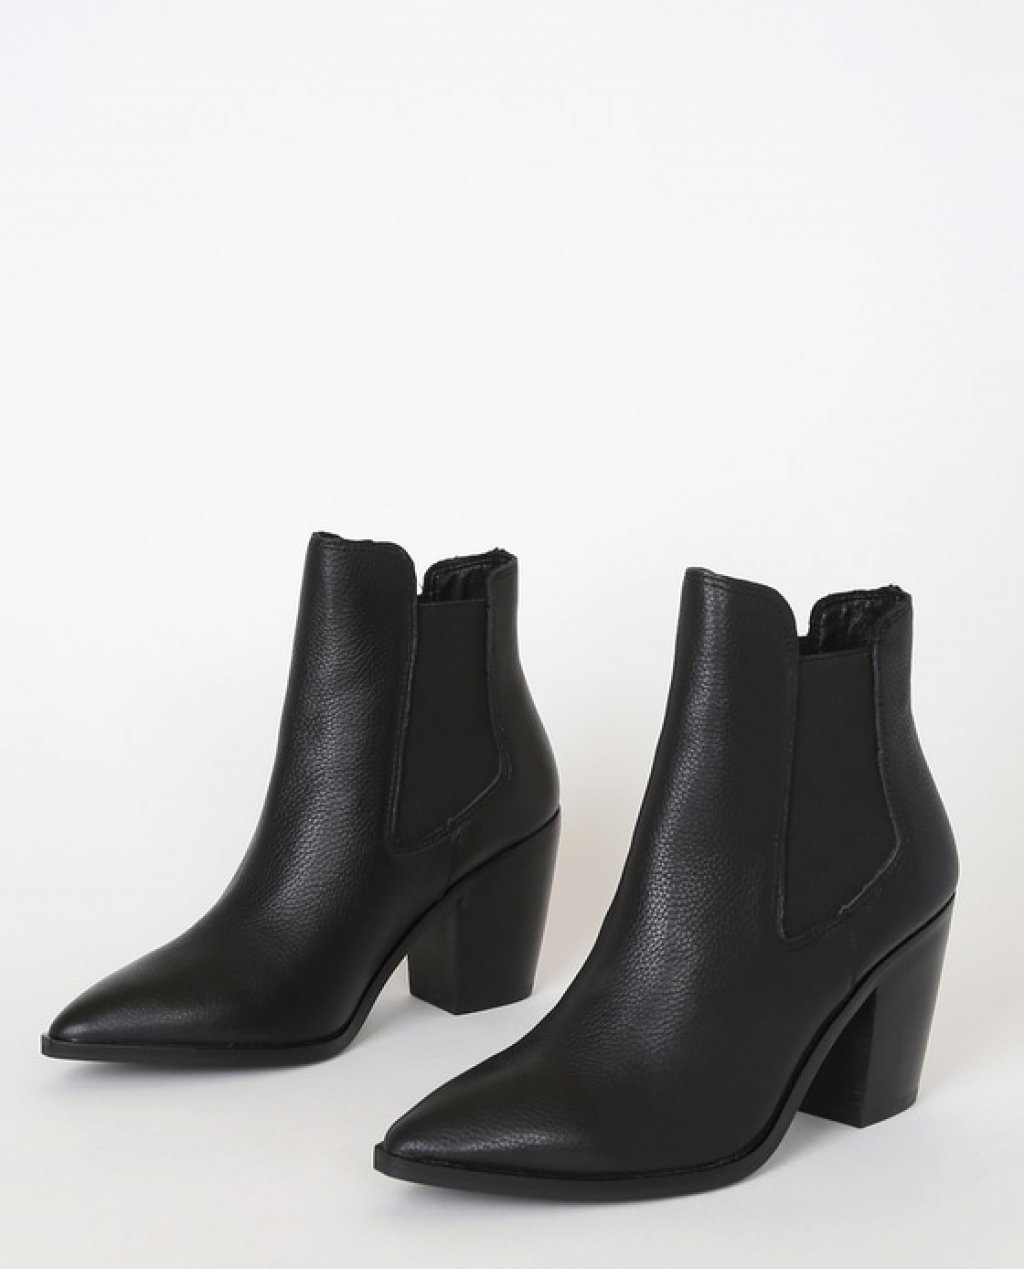 Utah Black Leather Pointed-Toe Ankle Booties